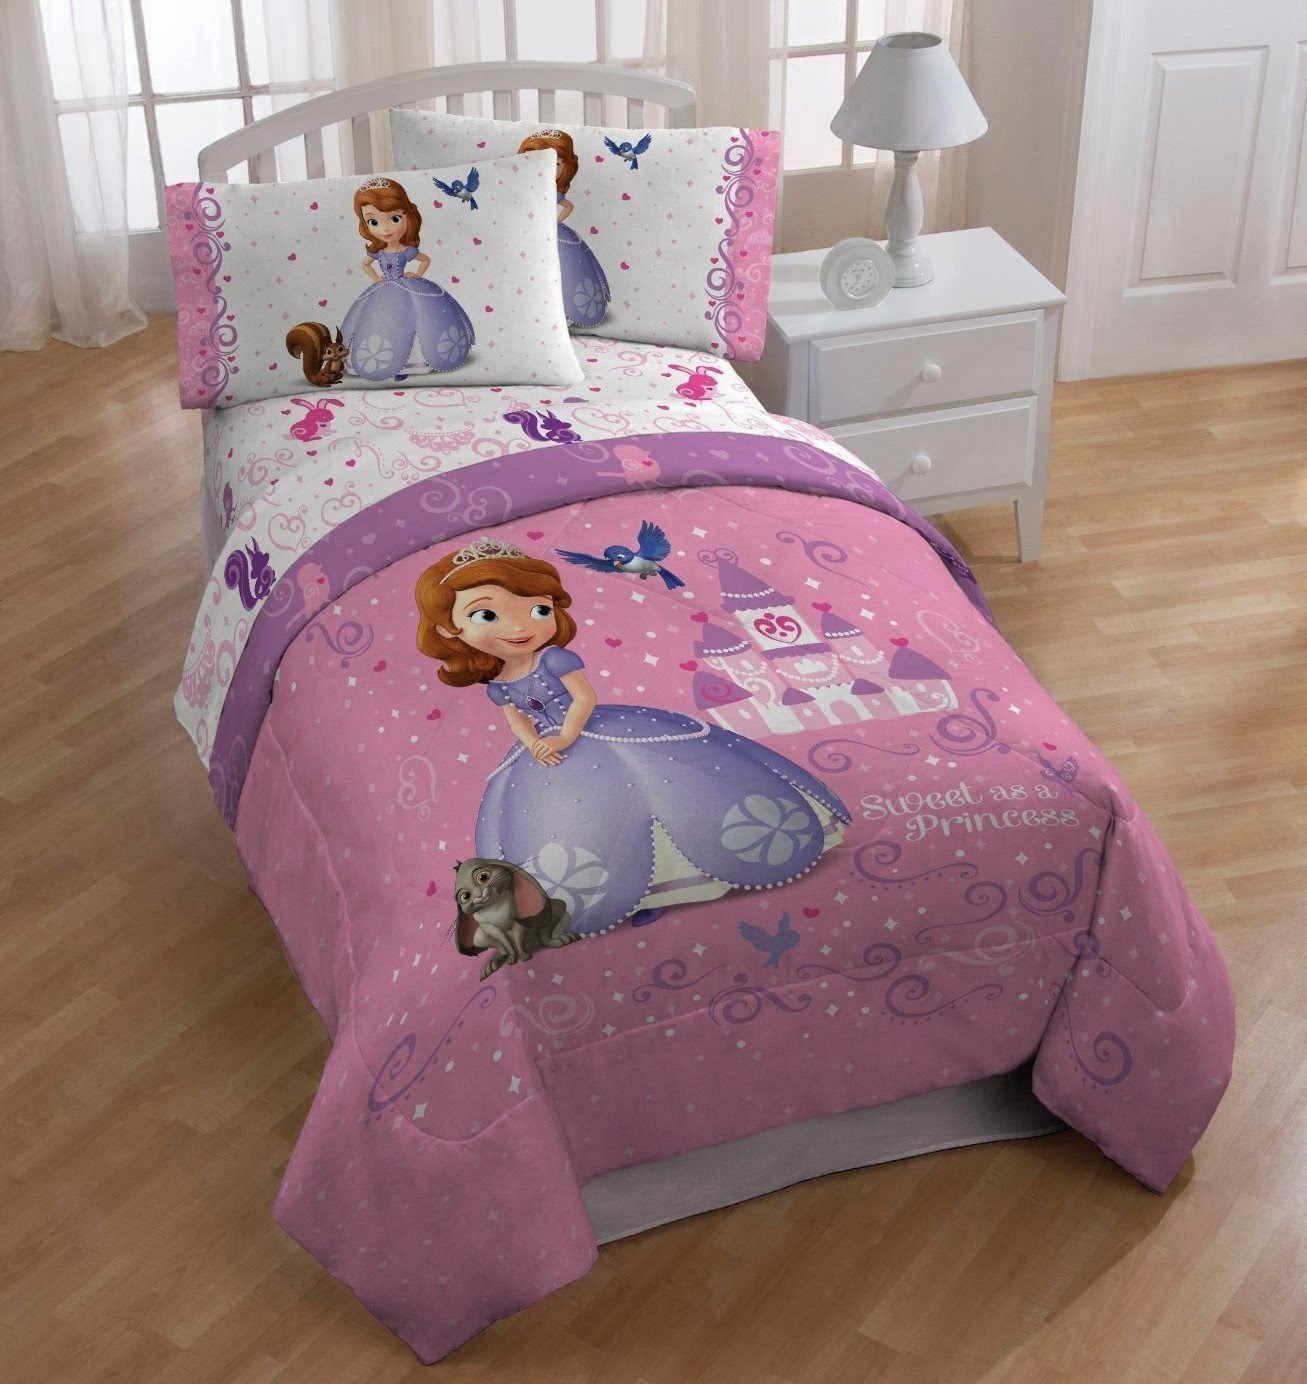 Bedroom Decor Ideas and Designs: How to Decorate a Disney\'s Sofia ...